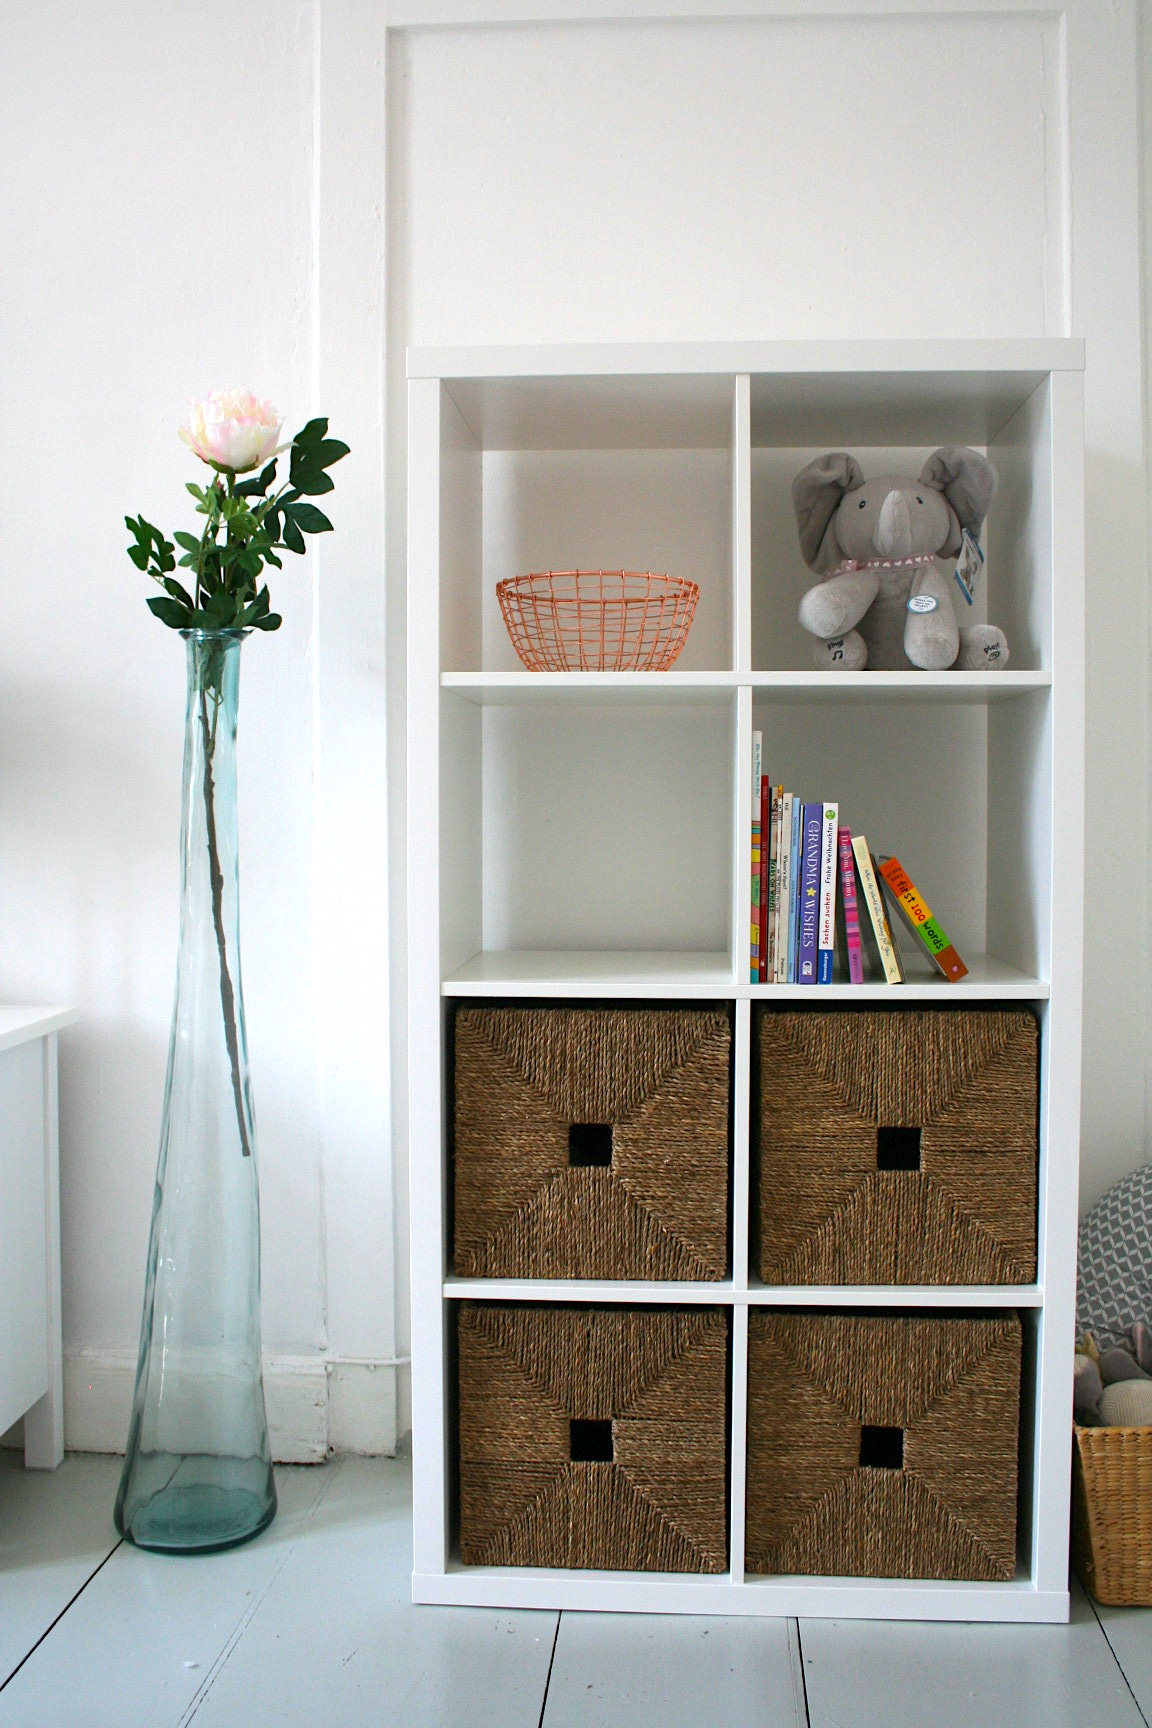 Cute little bookcase from Ikea - Which has some great storage space since this room does not have any closet storage.Its next to our daybed which helps to also make this a guest room. (The daybed actually pulls out to be a queen sized bed!). Once again thankful for the storage space underneath.